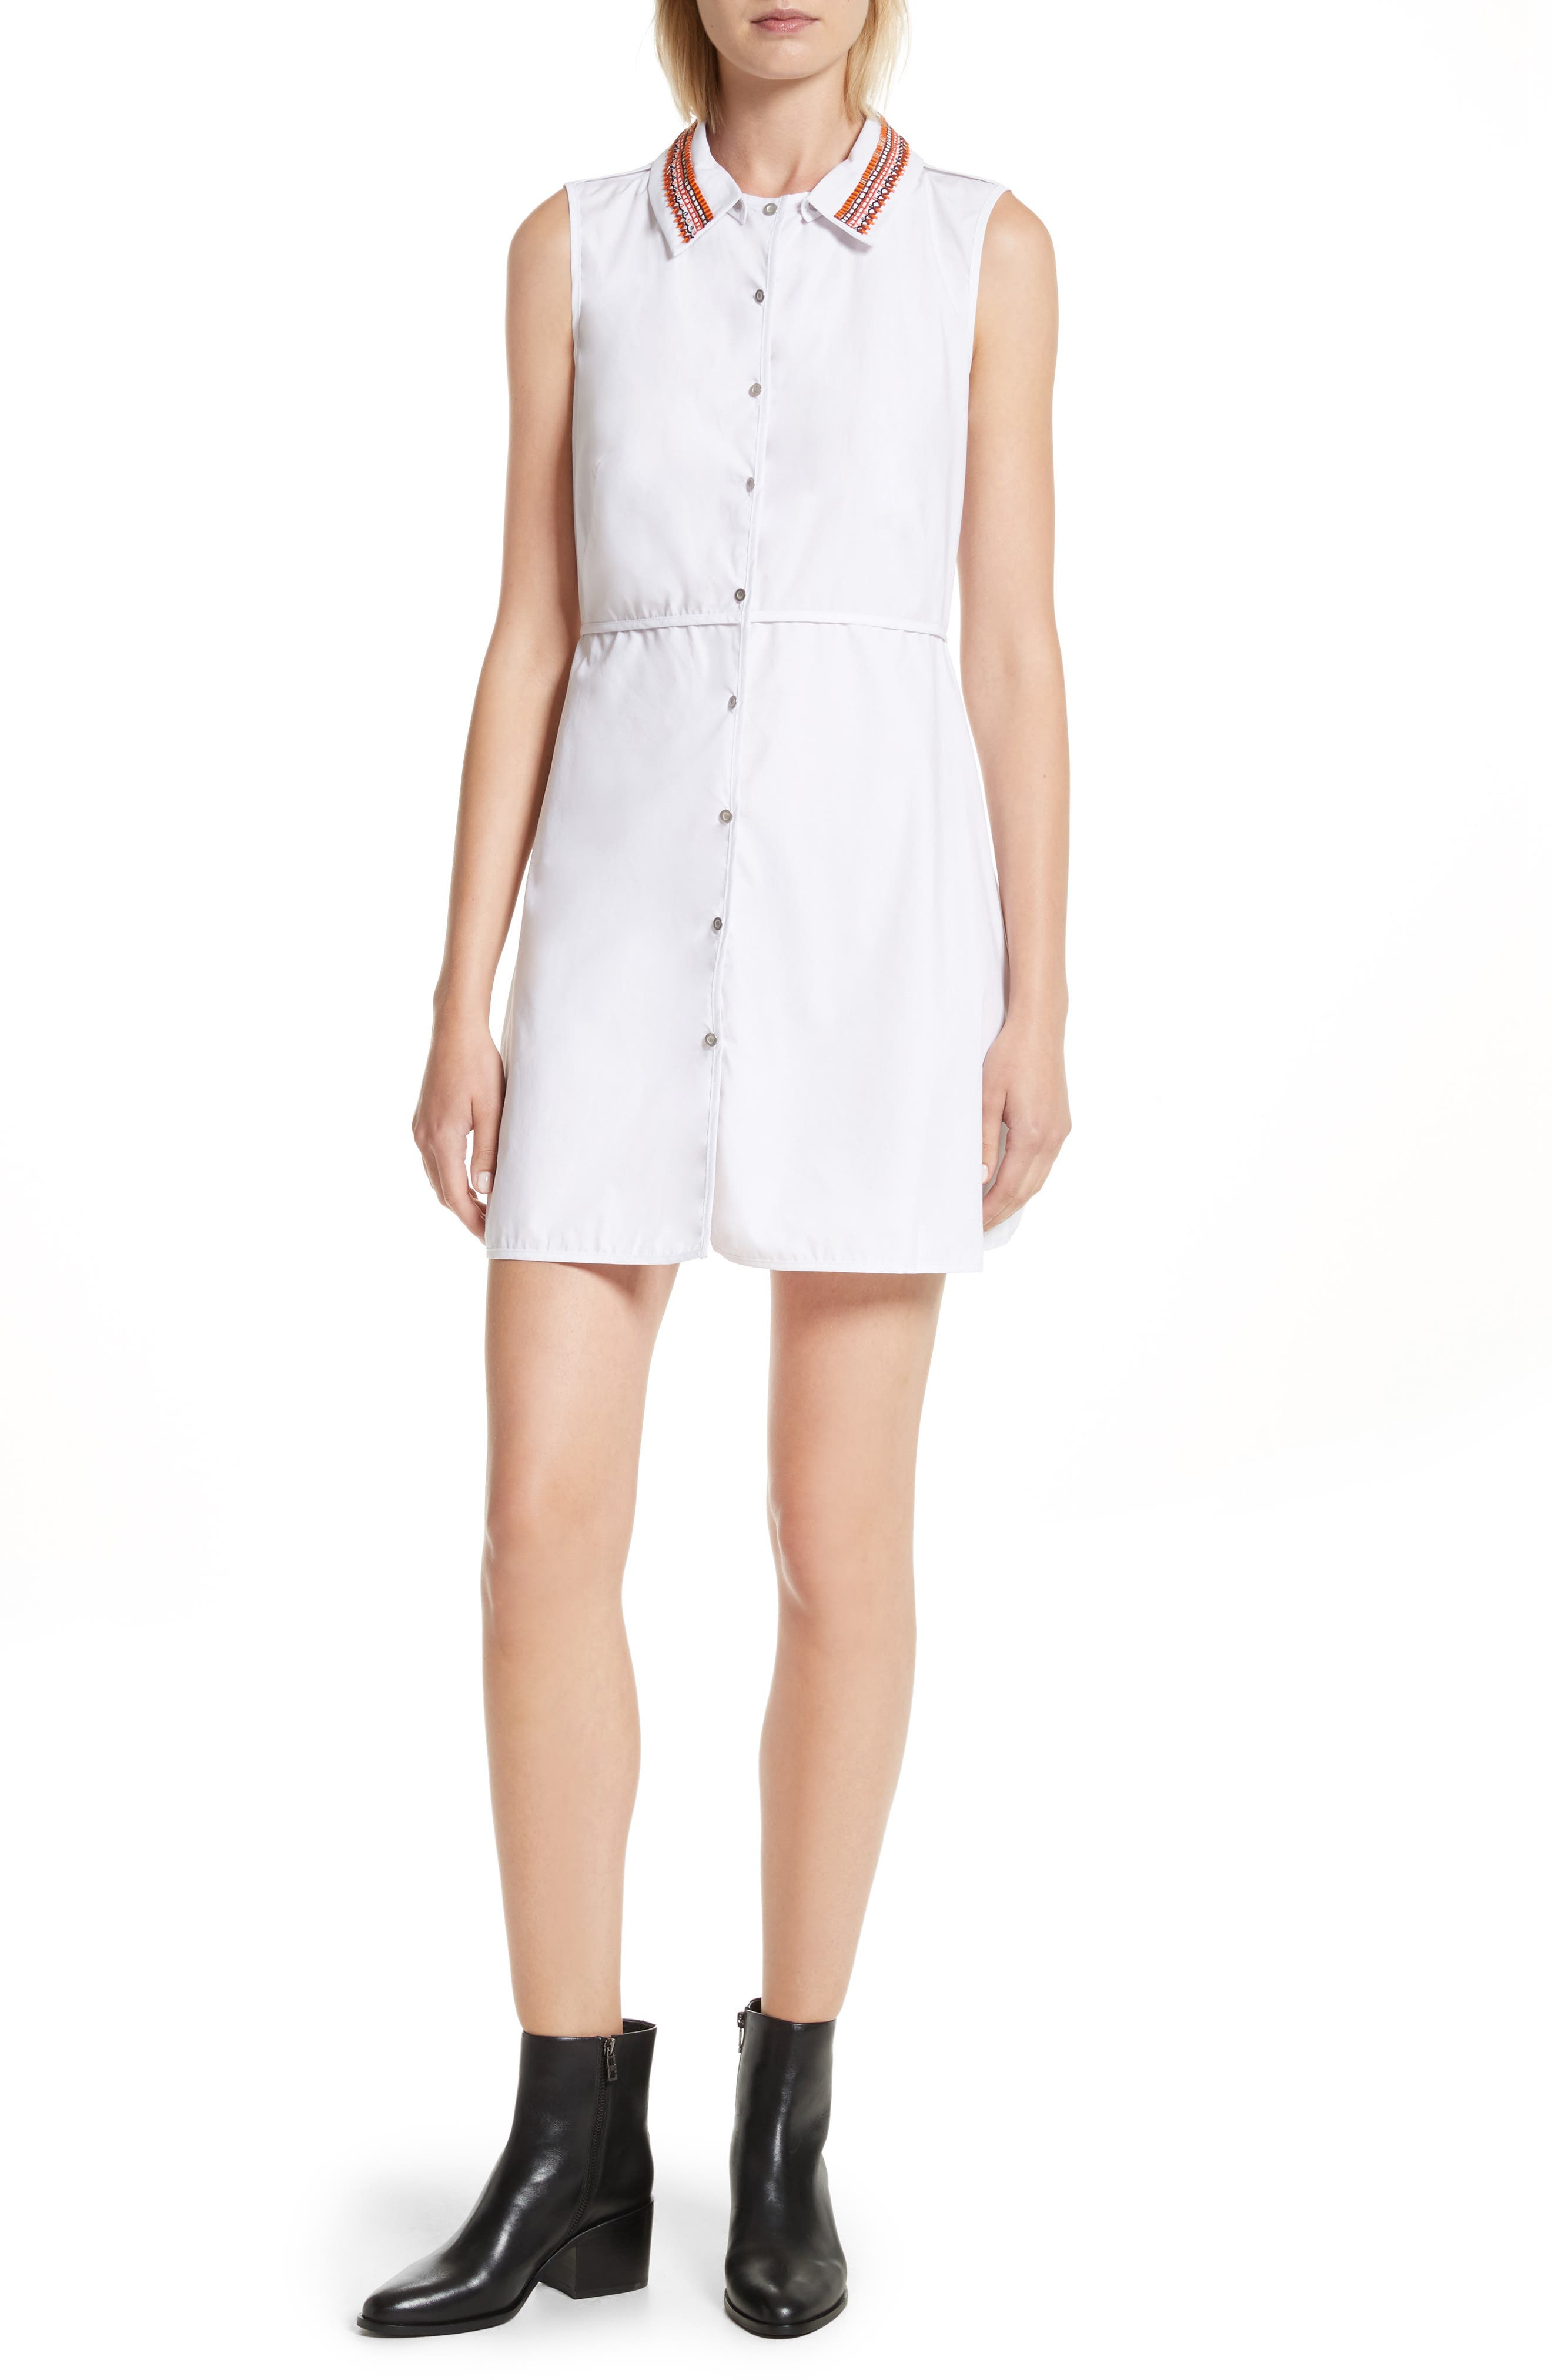 Opening Ceremony Transformer Poplin Dress with Detachable Embroidered Collar